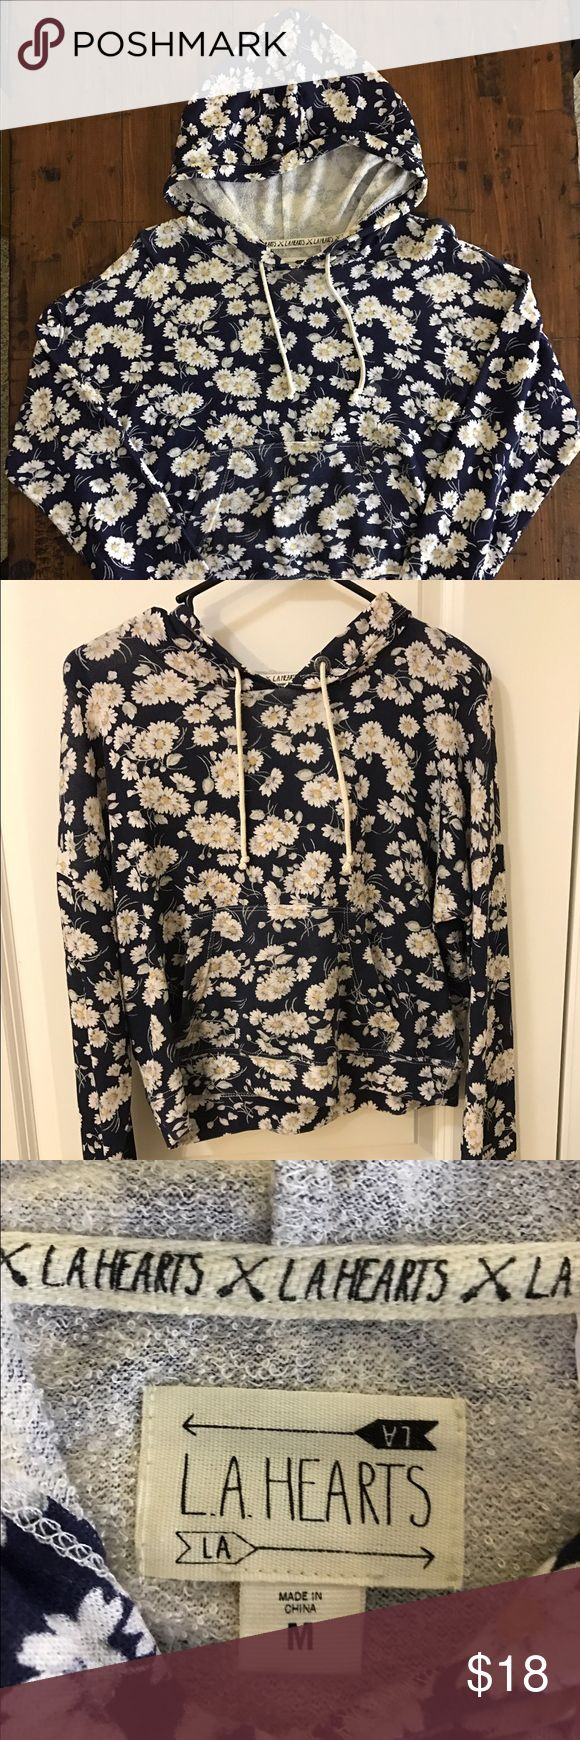 Pacsun LA HEARTS Daisy Floral Hoodie LA HEARTS by Pacsun Daisy Floral Hoodie. Features long sleeves and front kangaroo pocket. Cut in a super soft knit material. Ideal for layering. LA Hearts Tops Sweatshirts & Hoodies